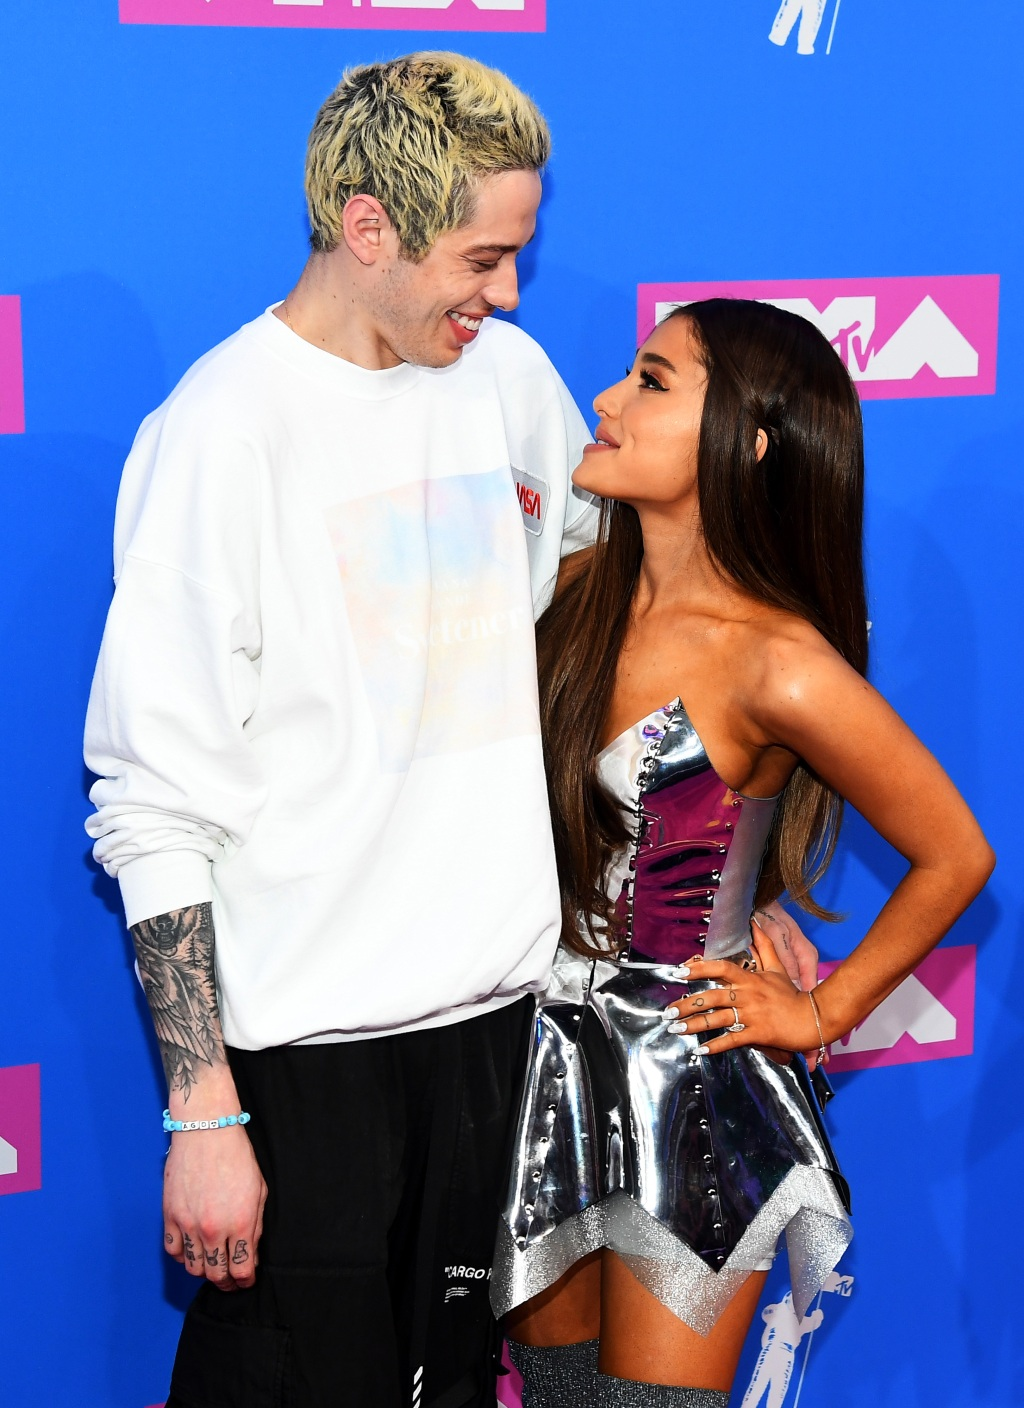 Pete Davison and Ariana Grande attend the 2018 MTV Video Music Awards at Radio City Music Hall on August 20, 2018 in New York City. (Photo by Nicholas Hunt/Getty Images for MTV)